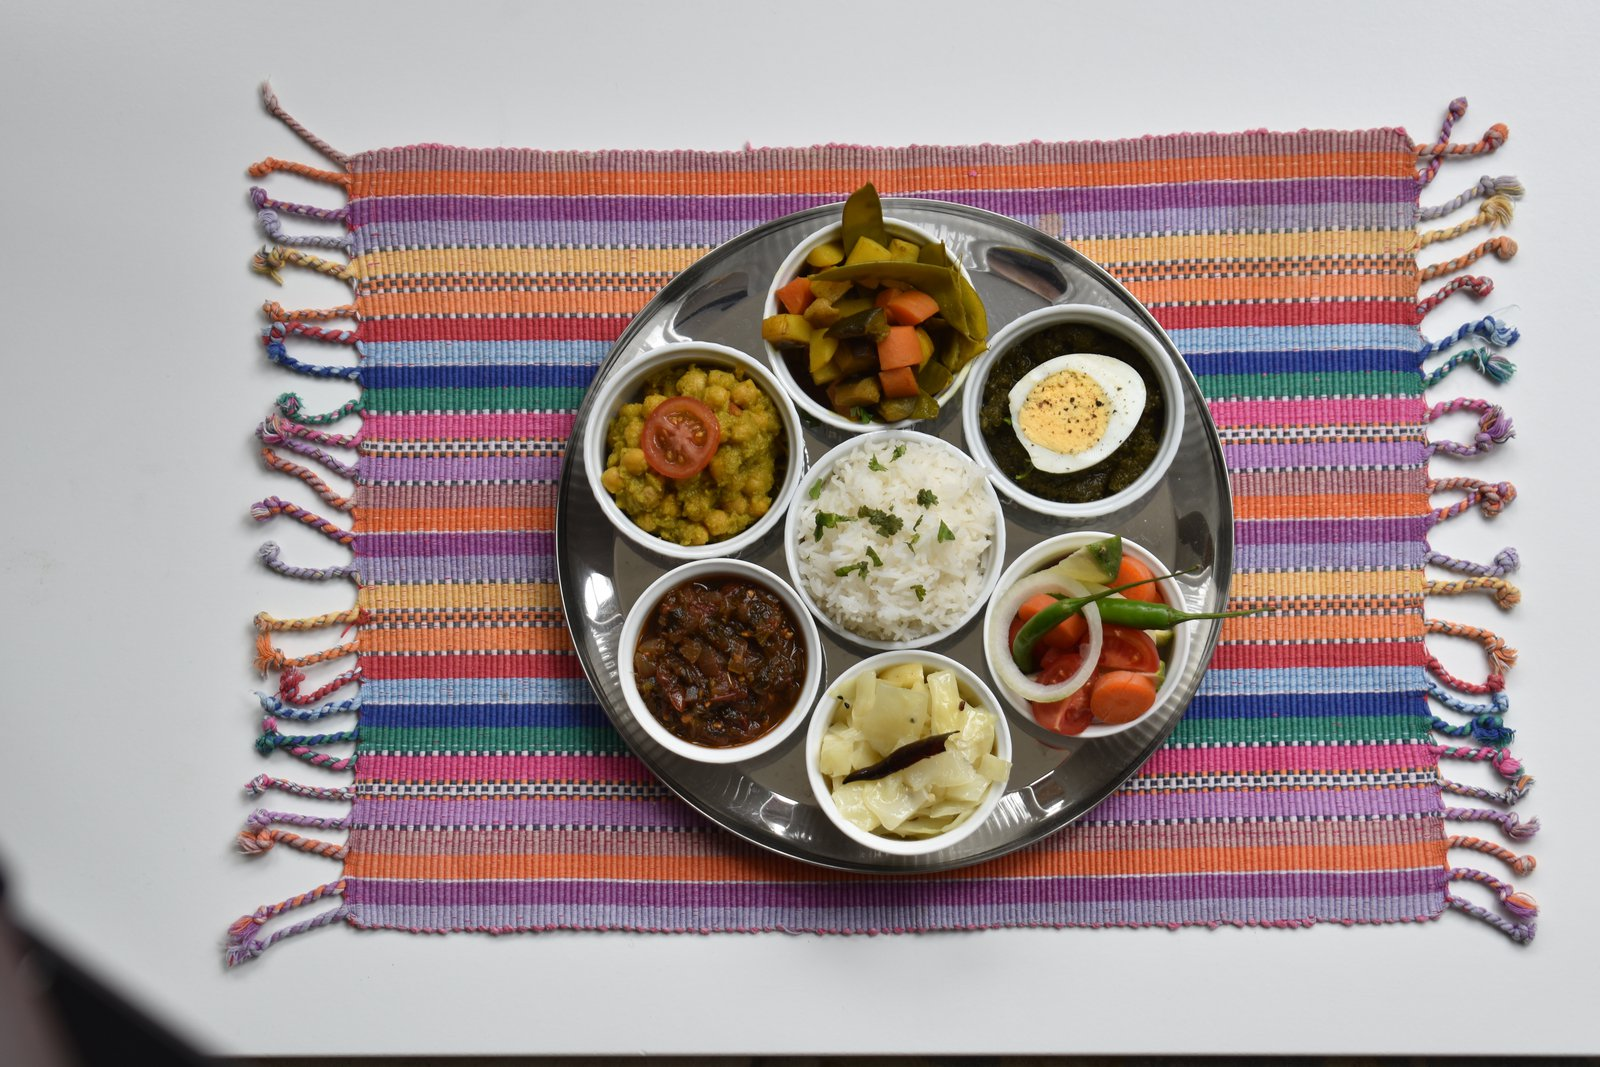 A classic Thali that Anna has recreated in her recipe book.